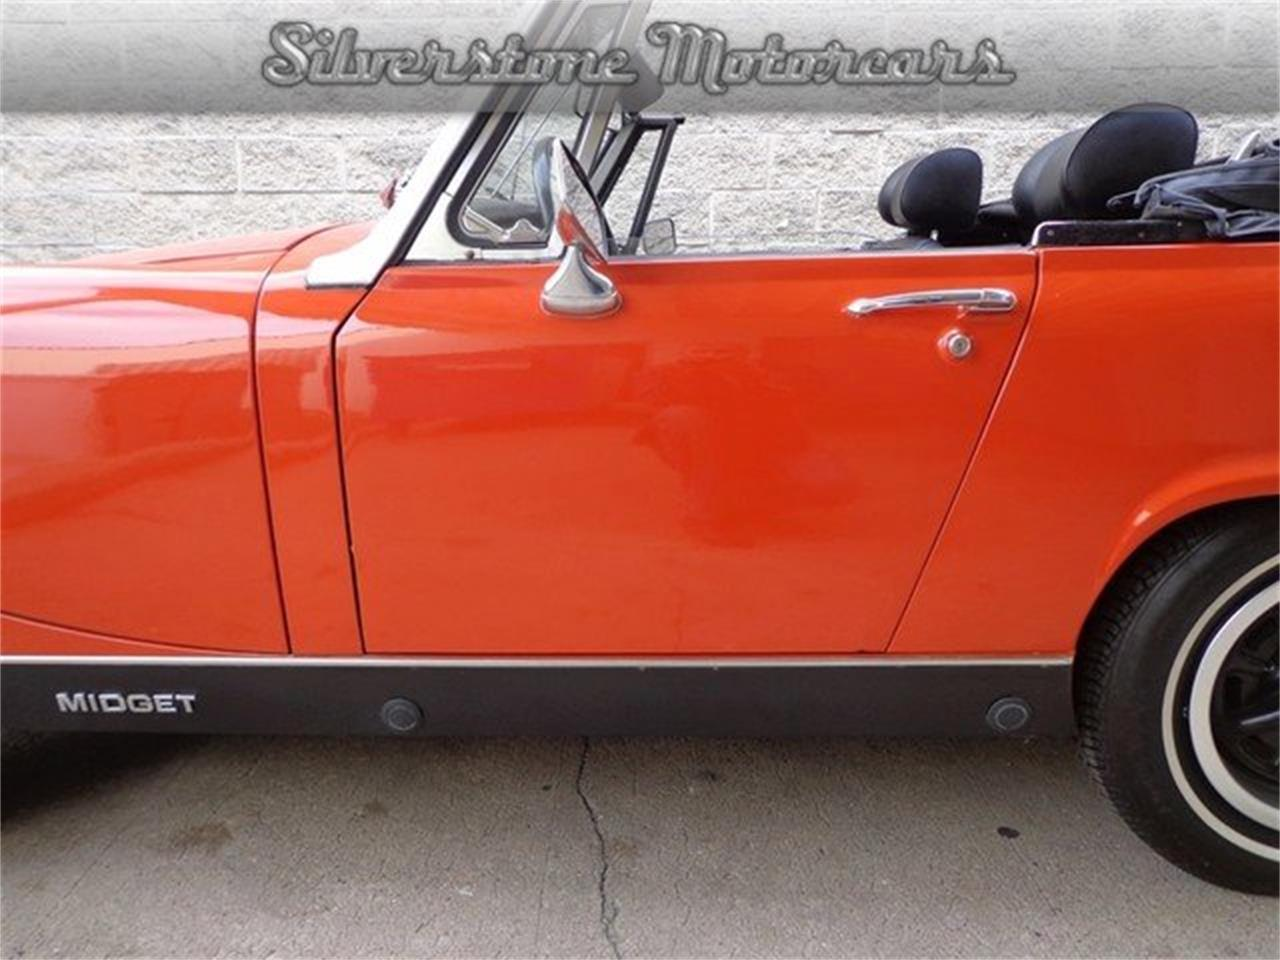 Large Picture of 1976 Midget located in Massachusetts - $7,500.00 Offered by Silverstone Motorcars - F8K7